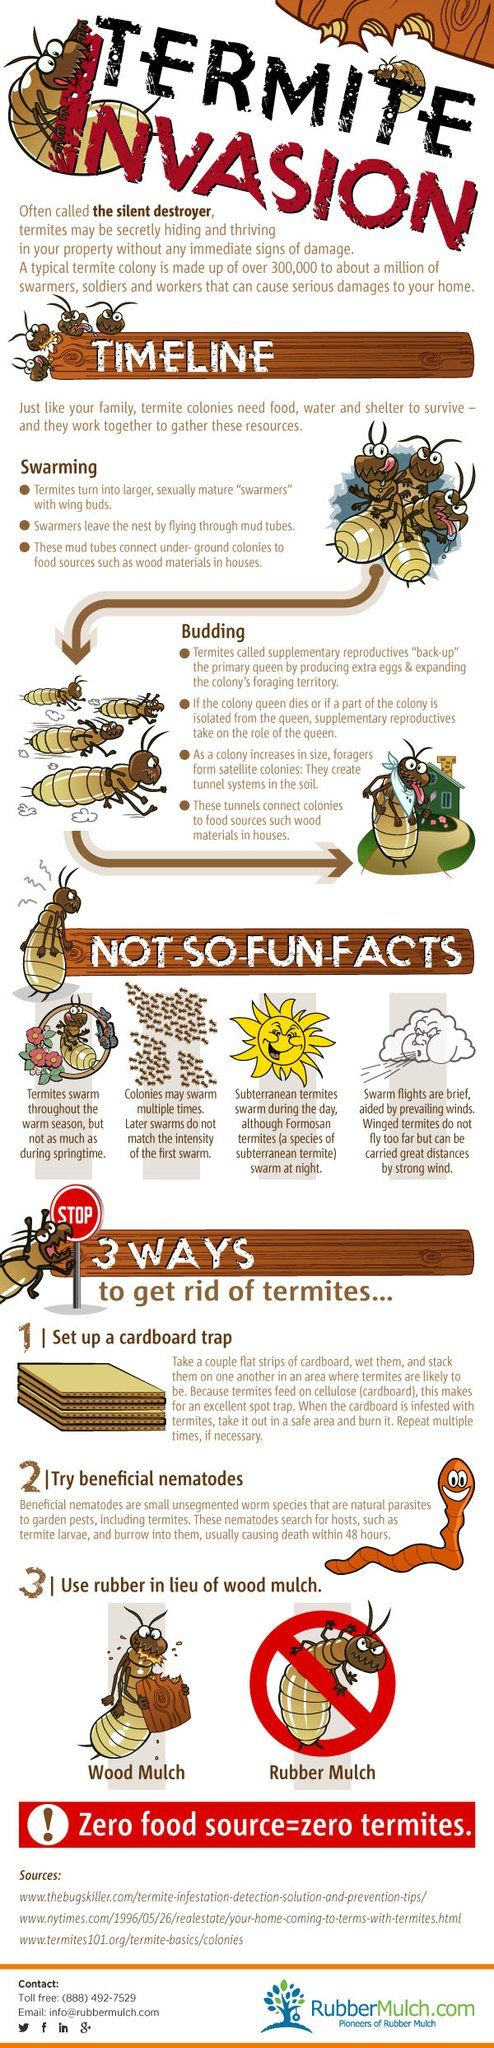 Why invite termites to your home? Switch from wood mulch to rubber to save yourself http://rubbermulch.com/blogs/rubbermulch/56506753-the-silent-destroyer-a-termite-home-invasion-timeline-infographic